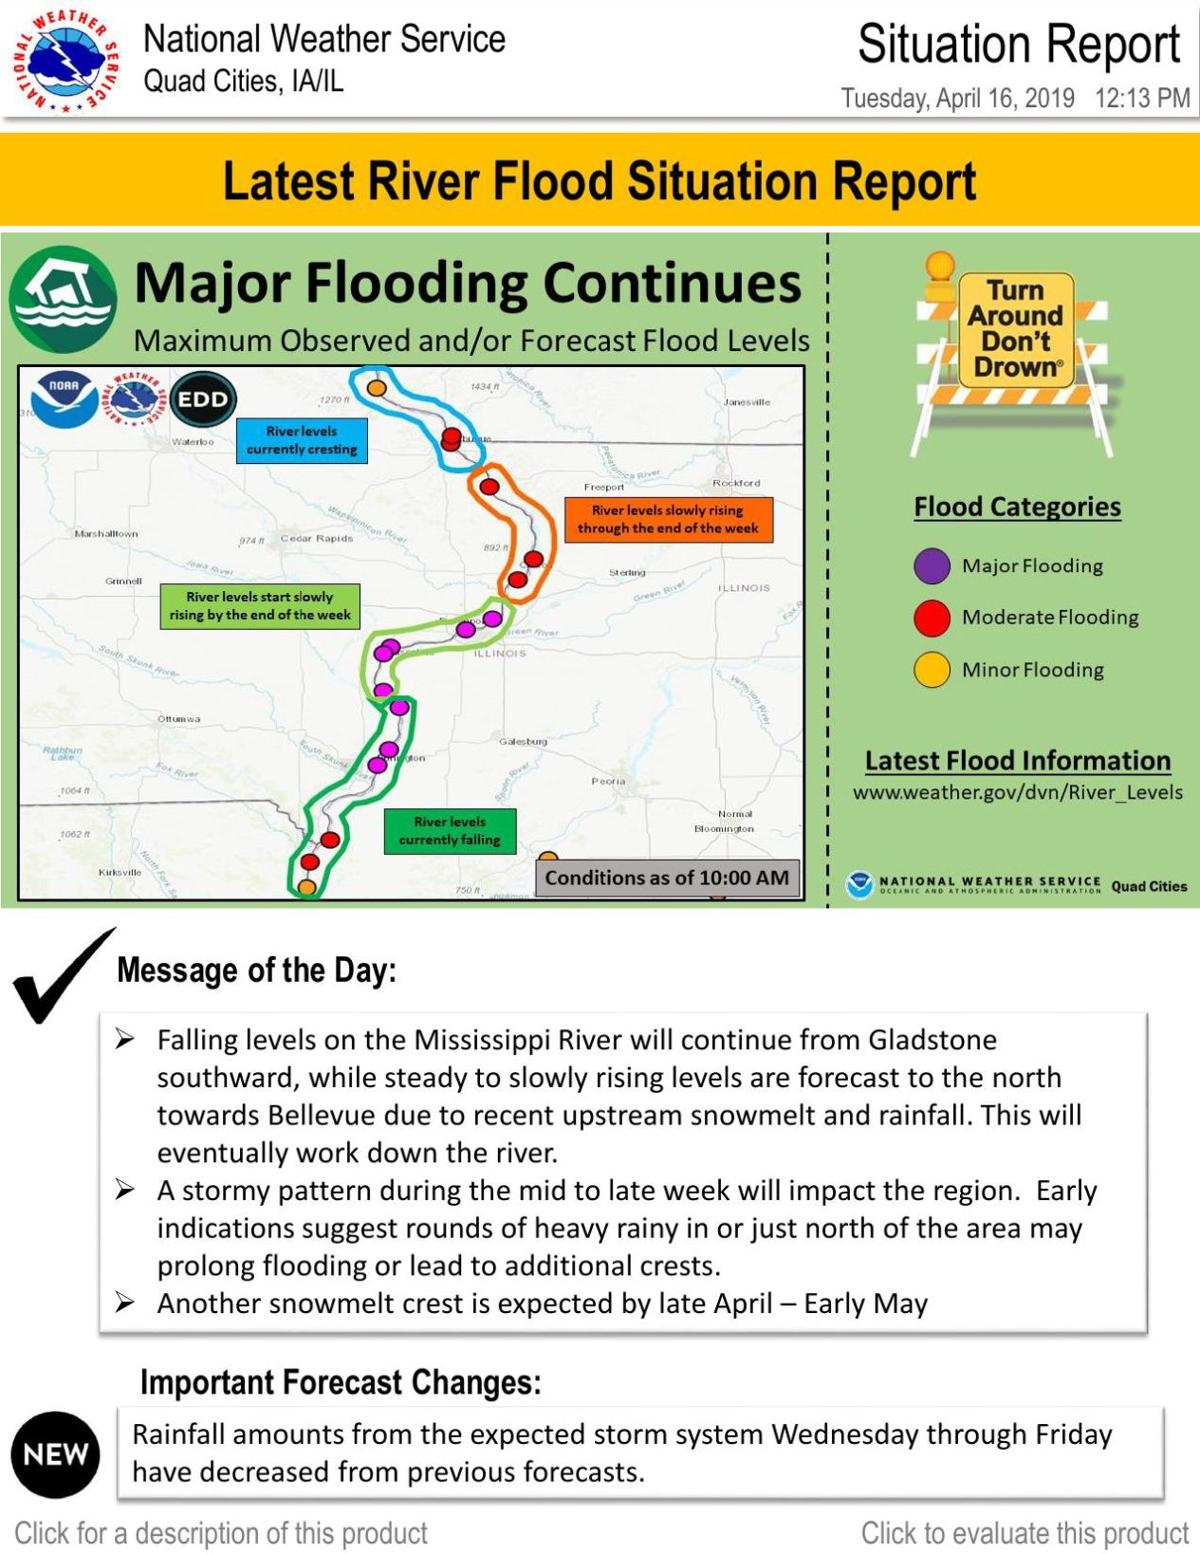 Flood situation report